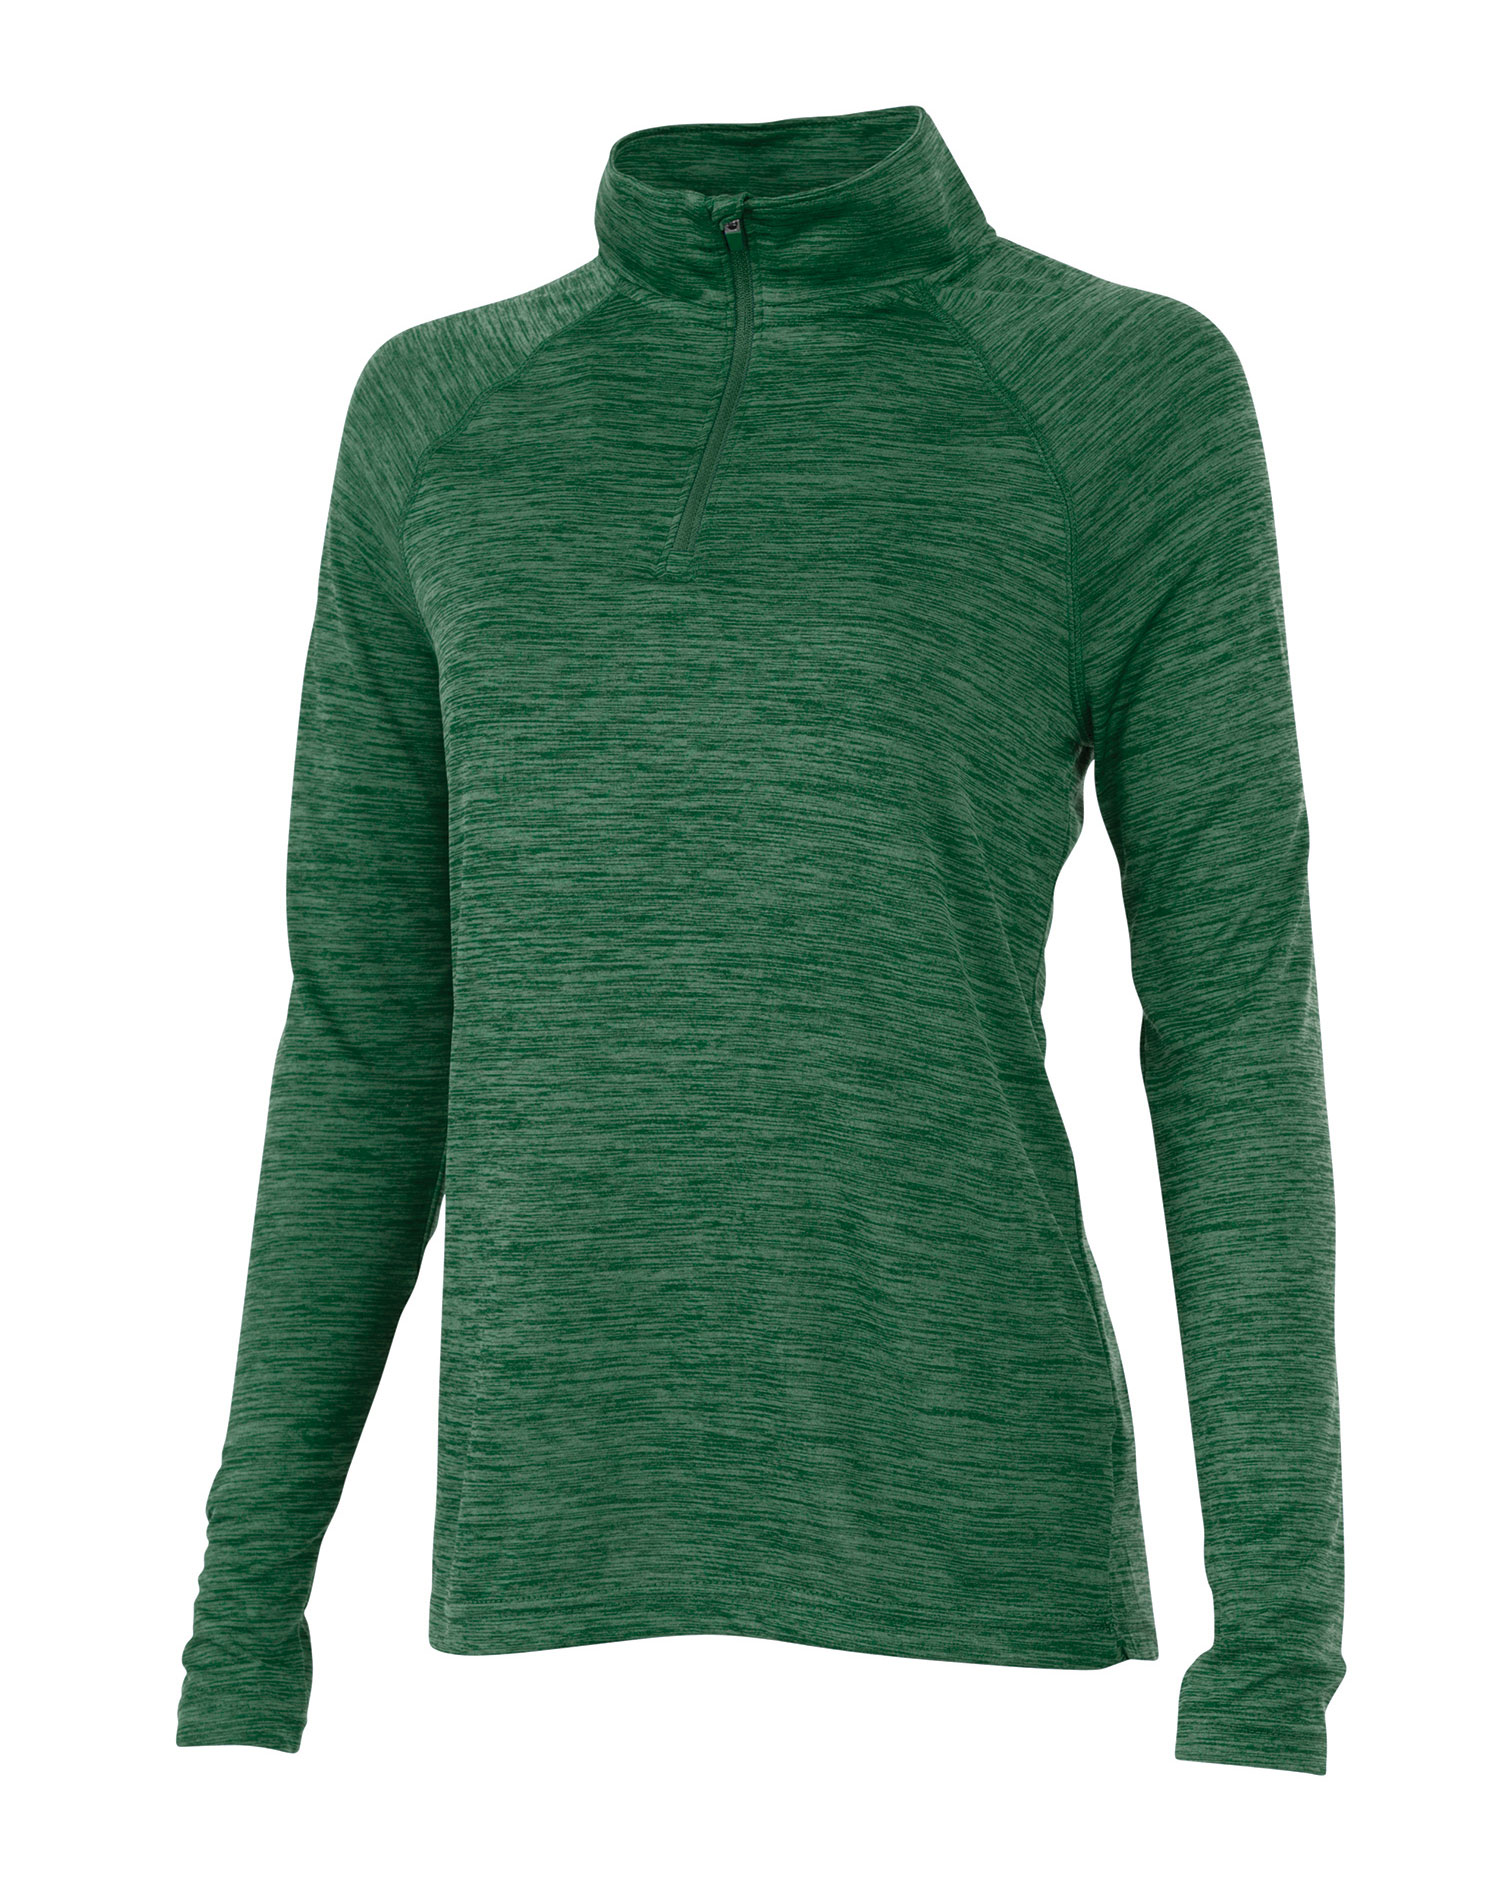 Womens Space Dye Performance Pullover by Charles River